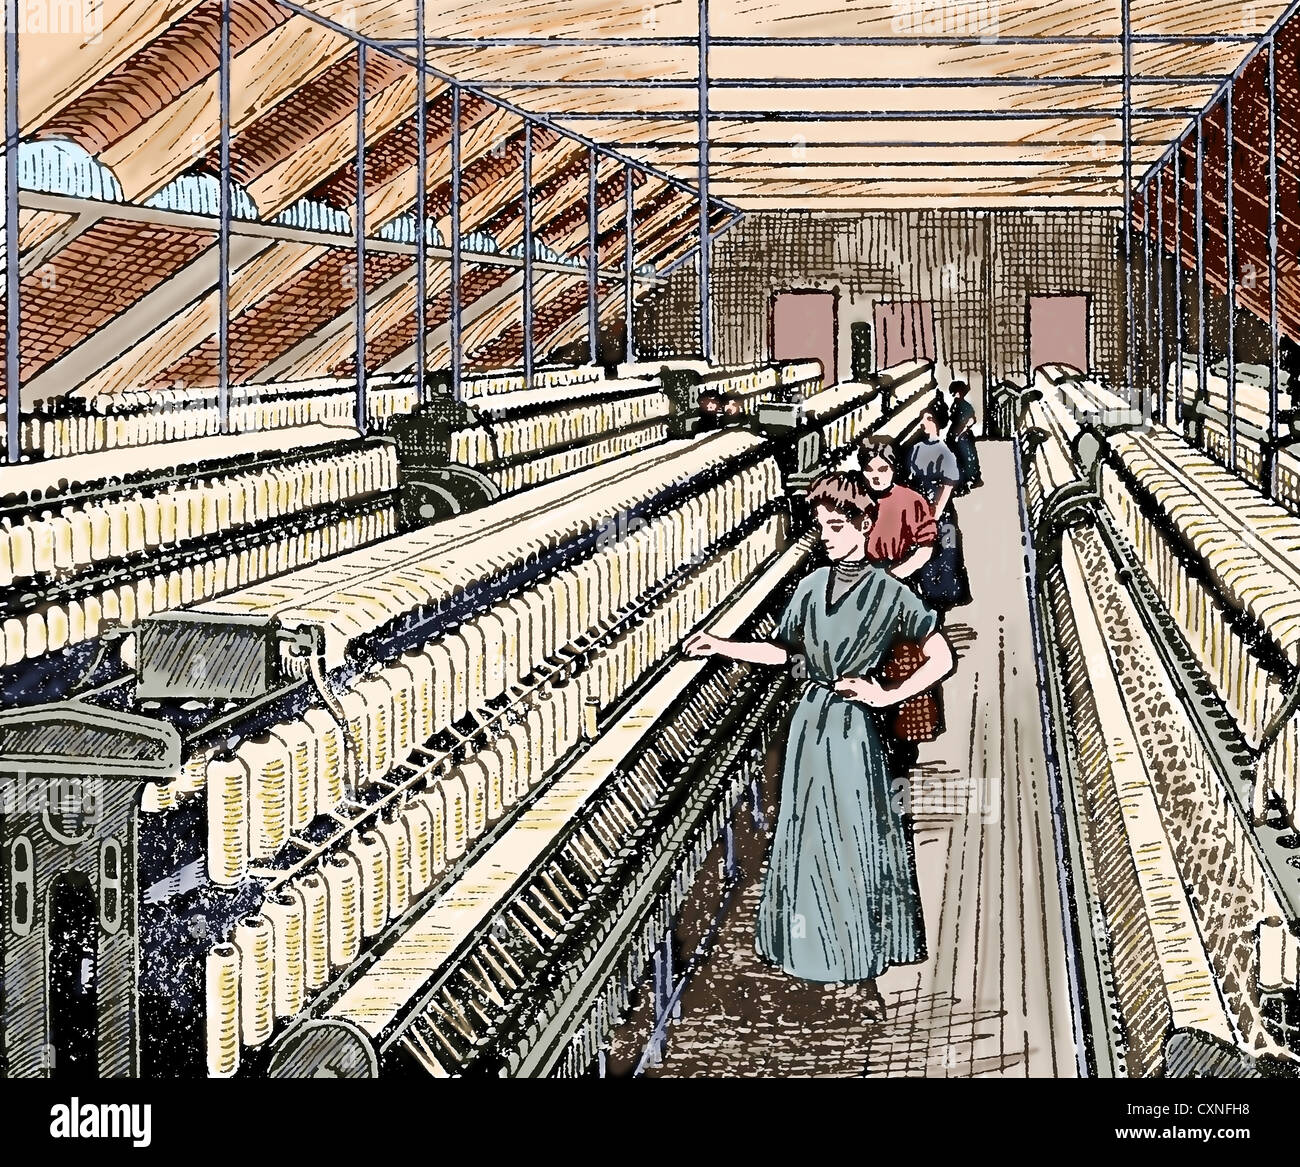 Textile Industry. Ring Spinning. Manufacturing process of cotton yarn. Women working in the roving. Colored engraving. - Stock Image